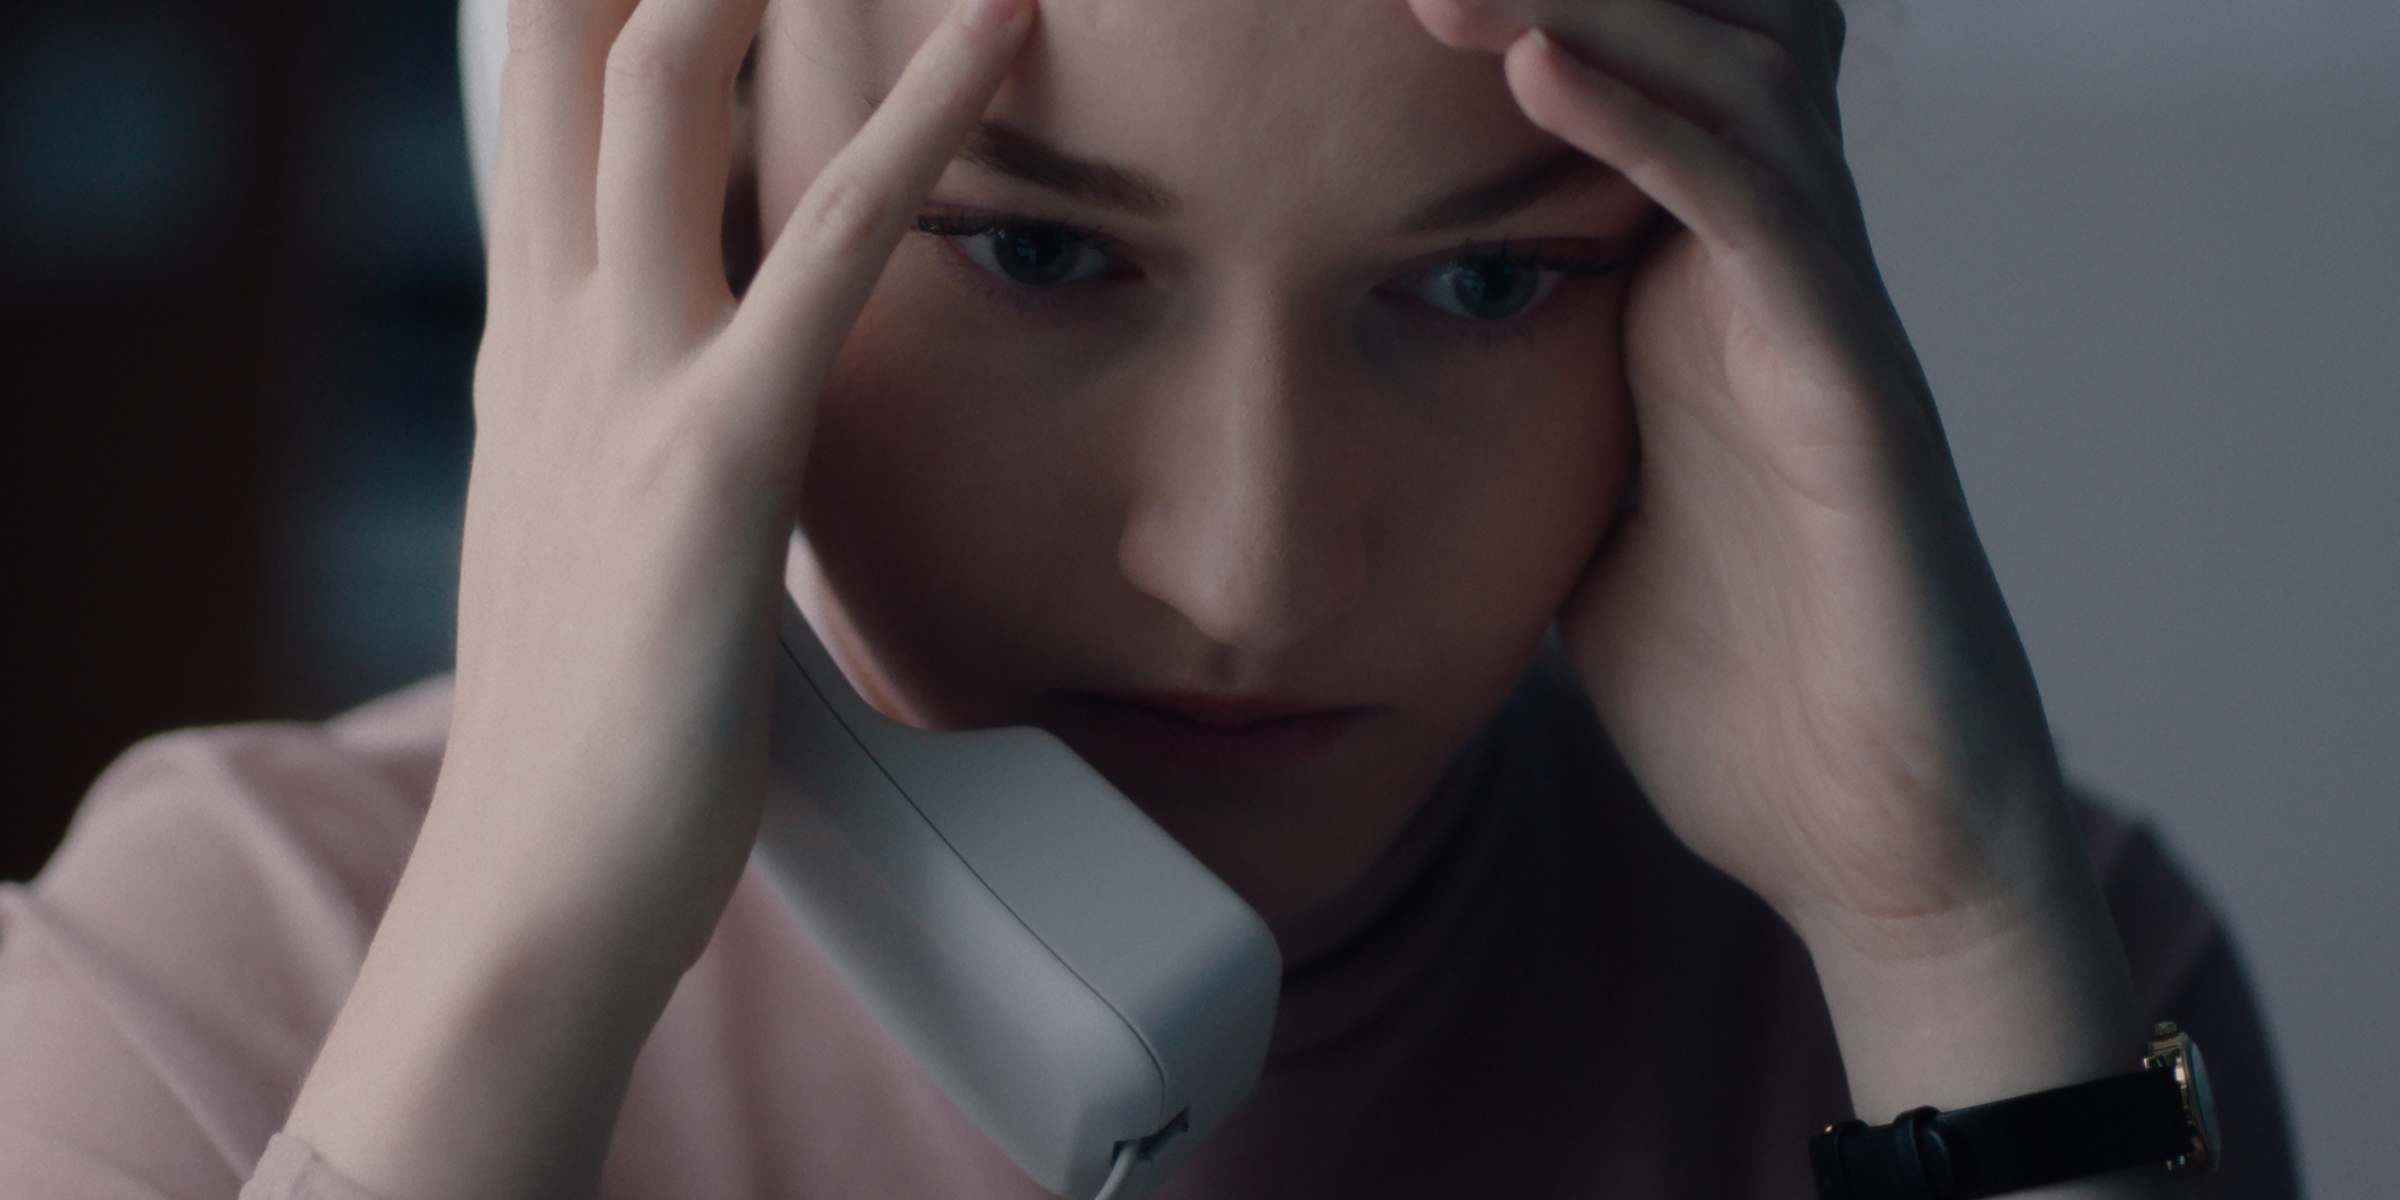 Julia Garner holds her head in her hands while she's on the phone in the movie The Assistant